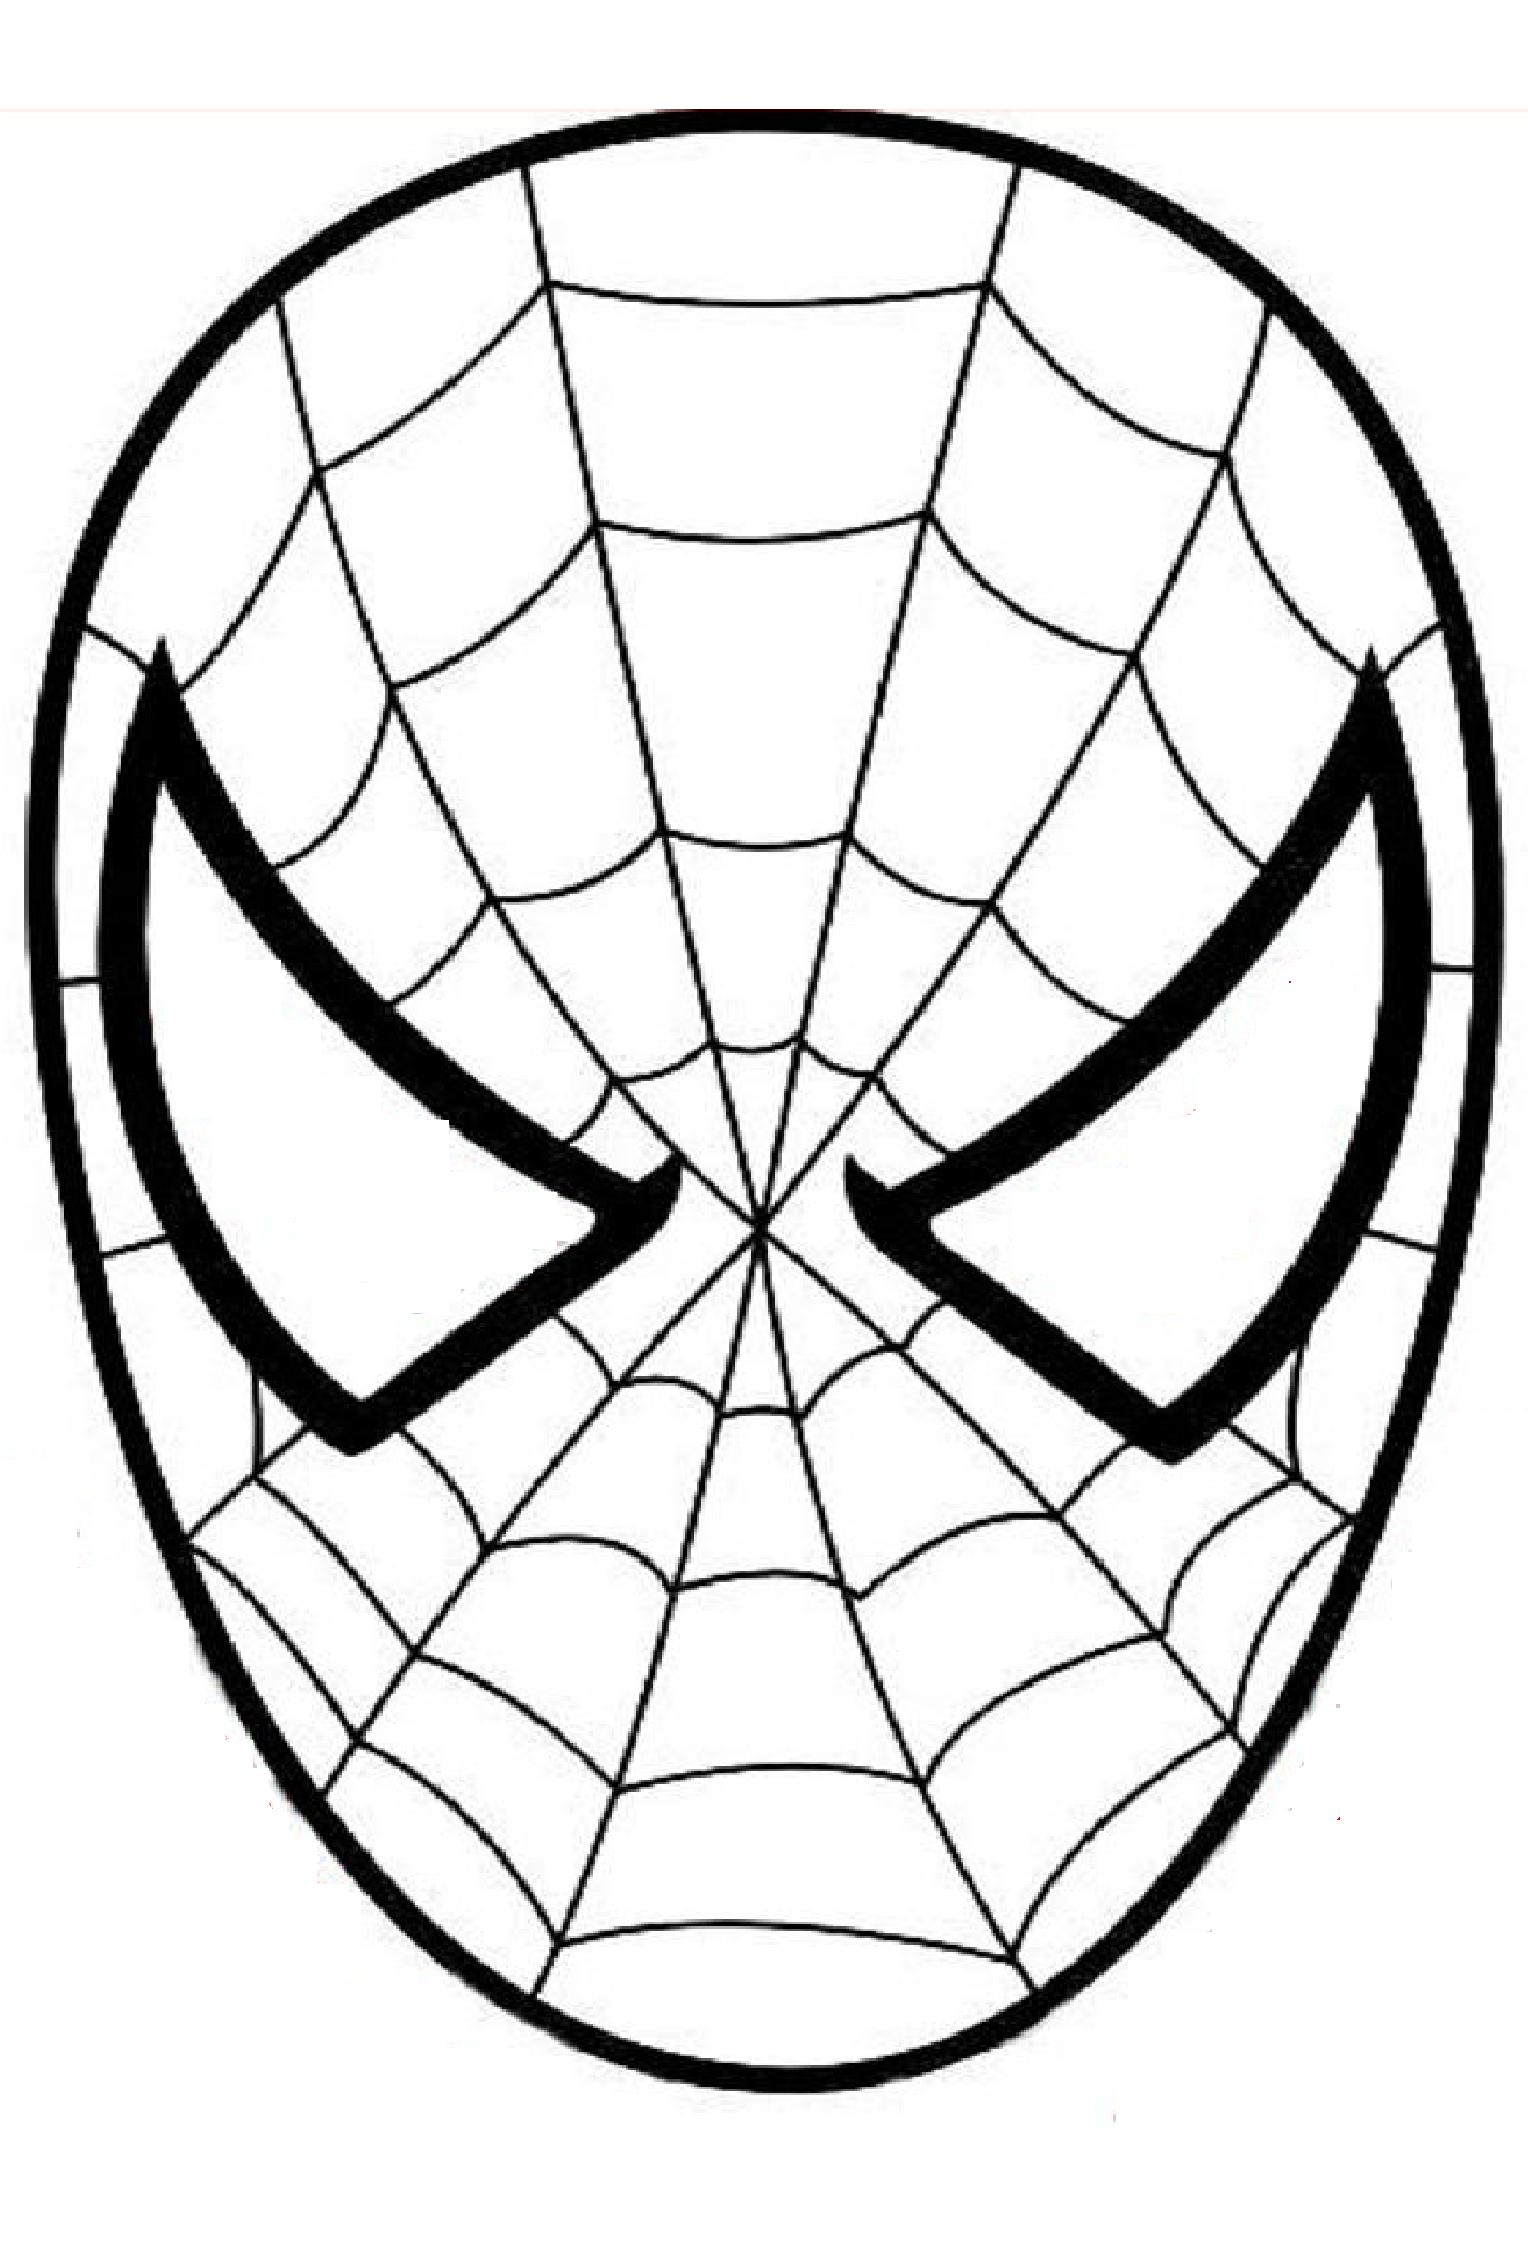 spiderman coloring pages easy easy spiderman coloring pages at getdrawings free download easy pages spiderman coloring